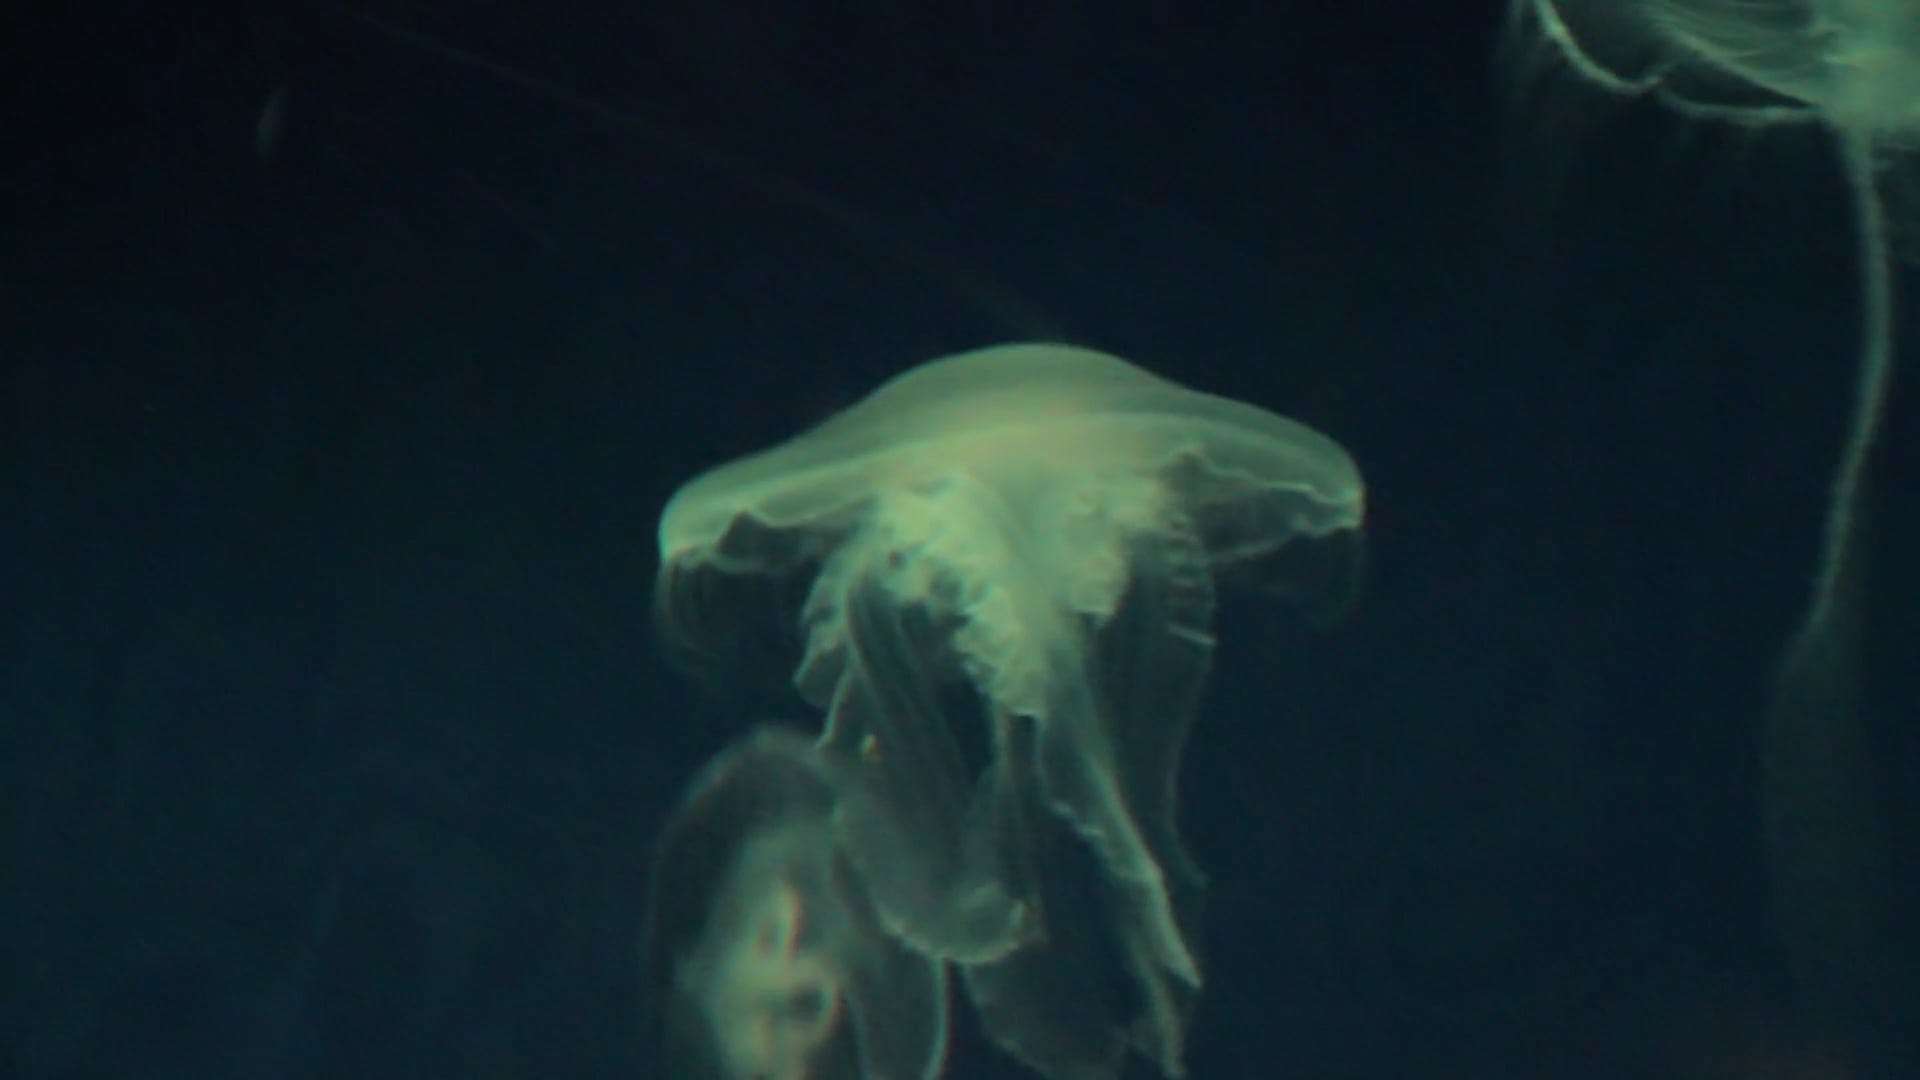 A Jellyfish Underwater With Changing Background Colors